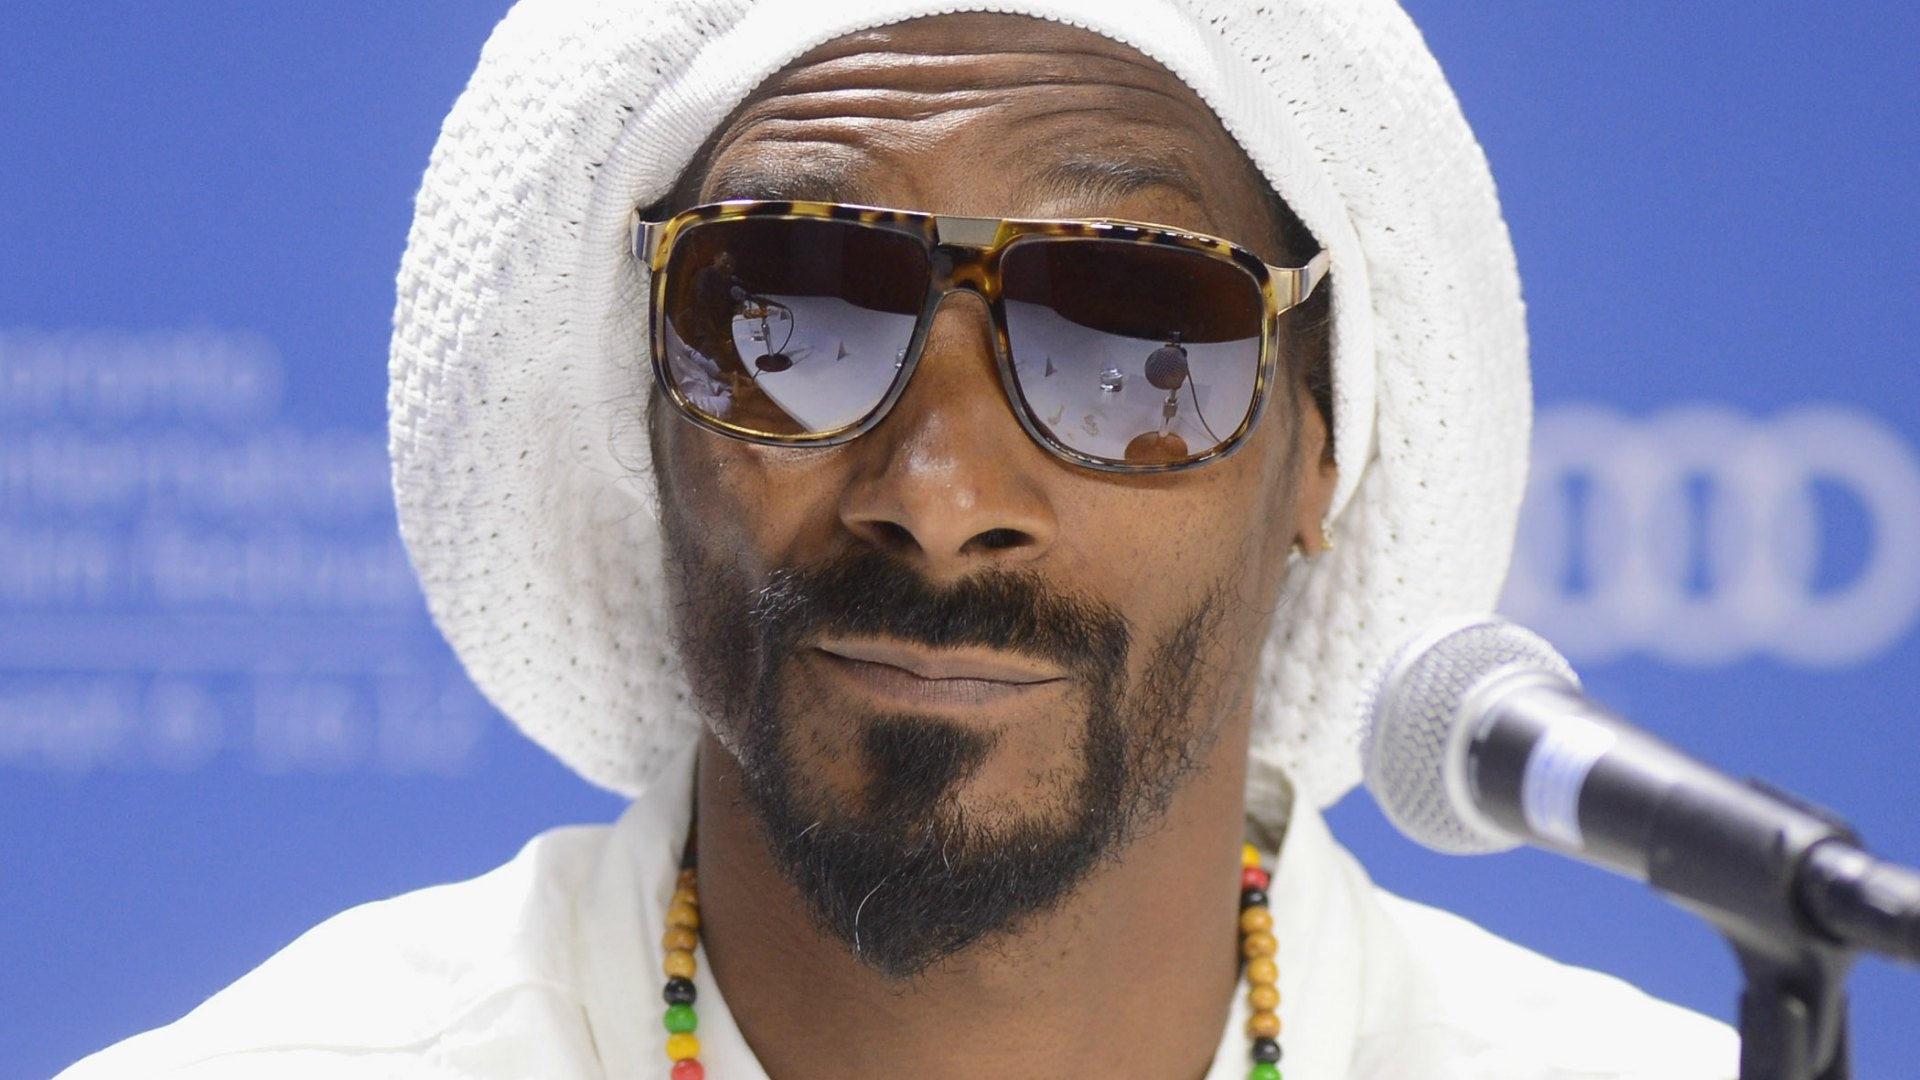 Snoop Dogg Hat Wallpaper 59938 1920x1080px